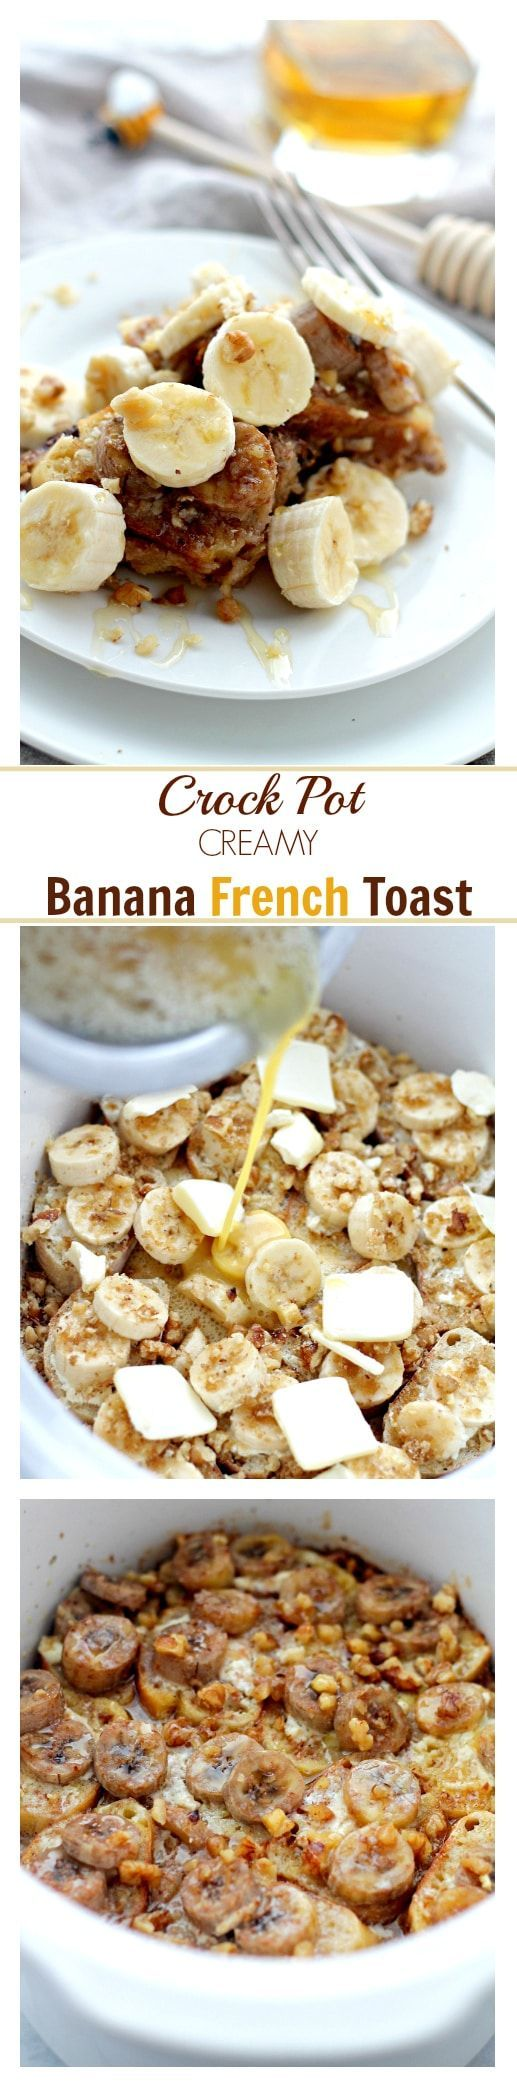 Crock Pot Creamy Banana French Toast   www.diethood.com   Full of amazing flavors, this French Toast is loaded with bananas and it's baked in the Crock Pot. Much easier than slaving over the stove!